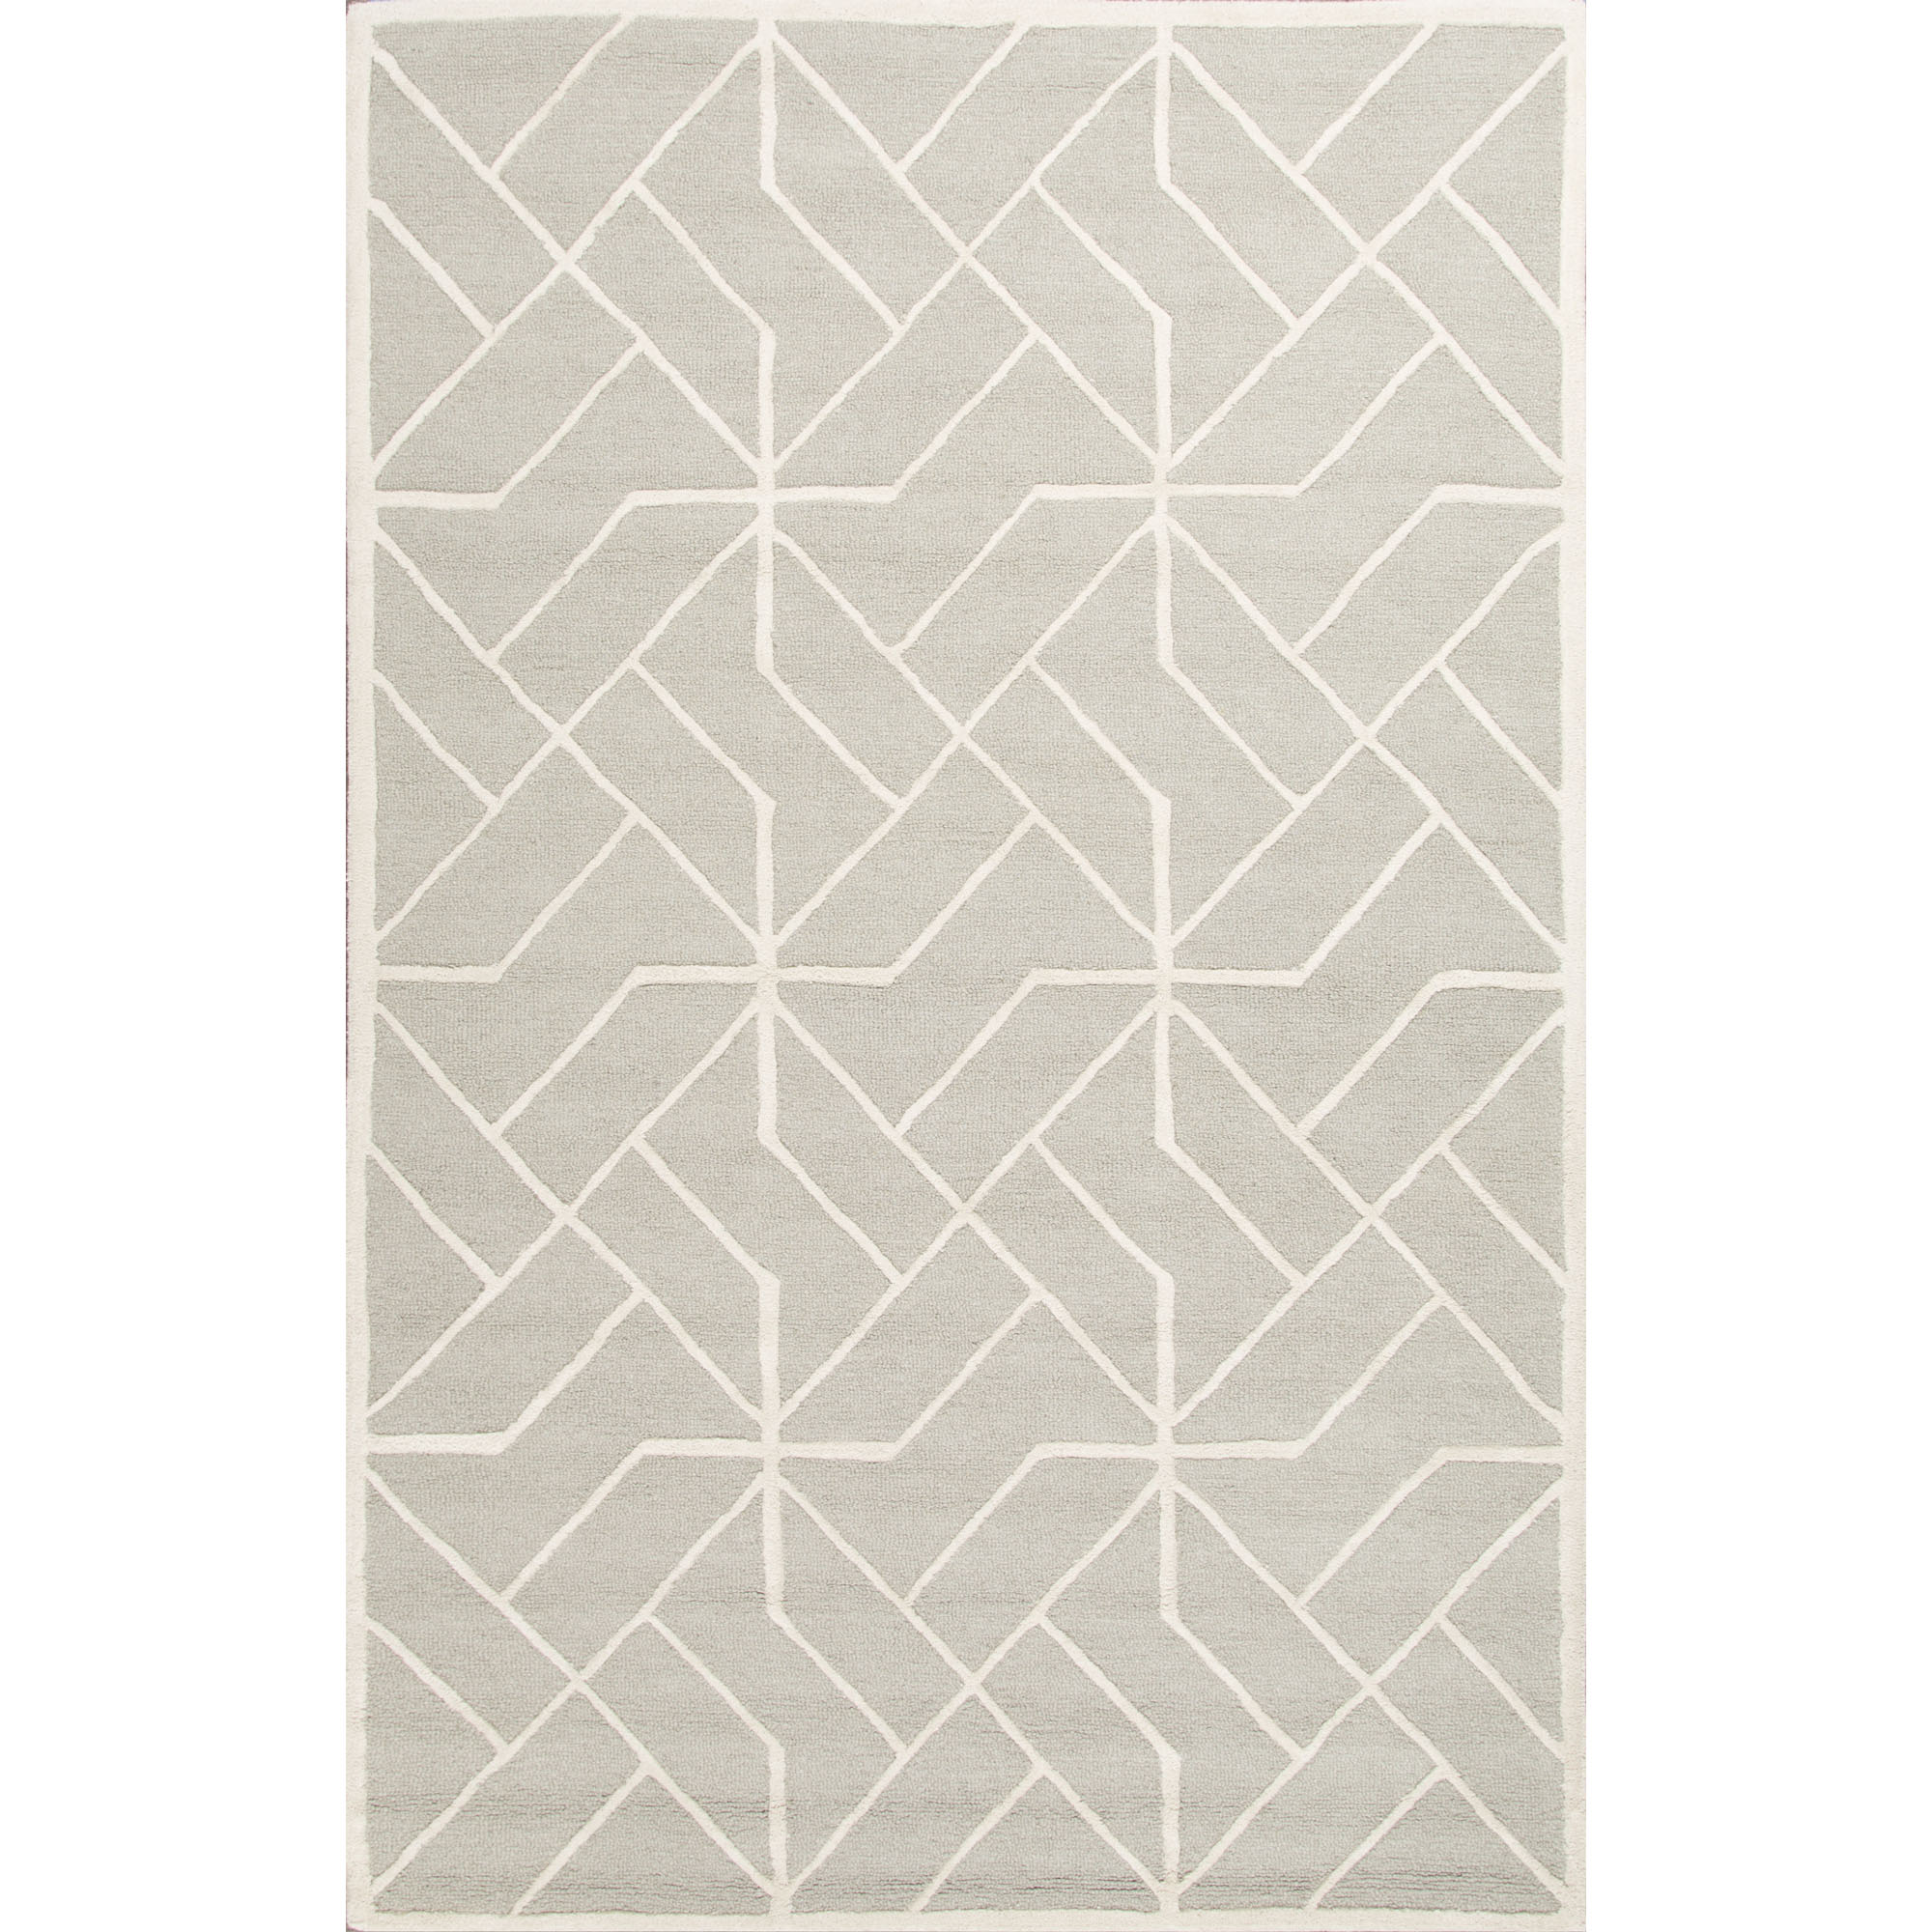 JAIPUR Rugs Lounge 5 x 8 Rug - Item Number: RUG110477